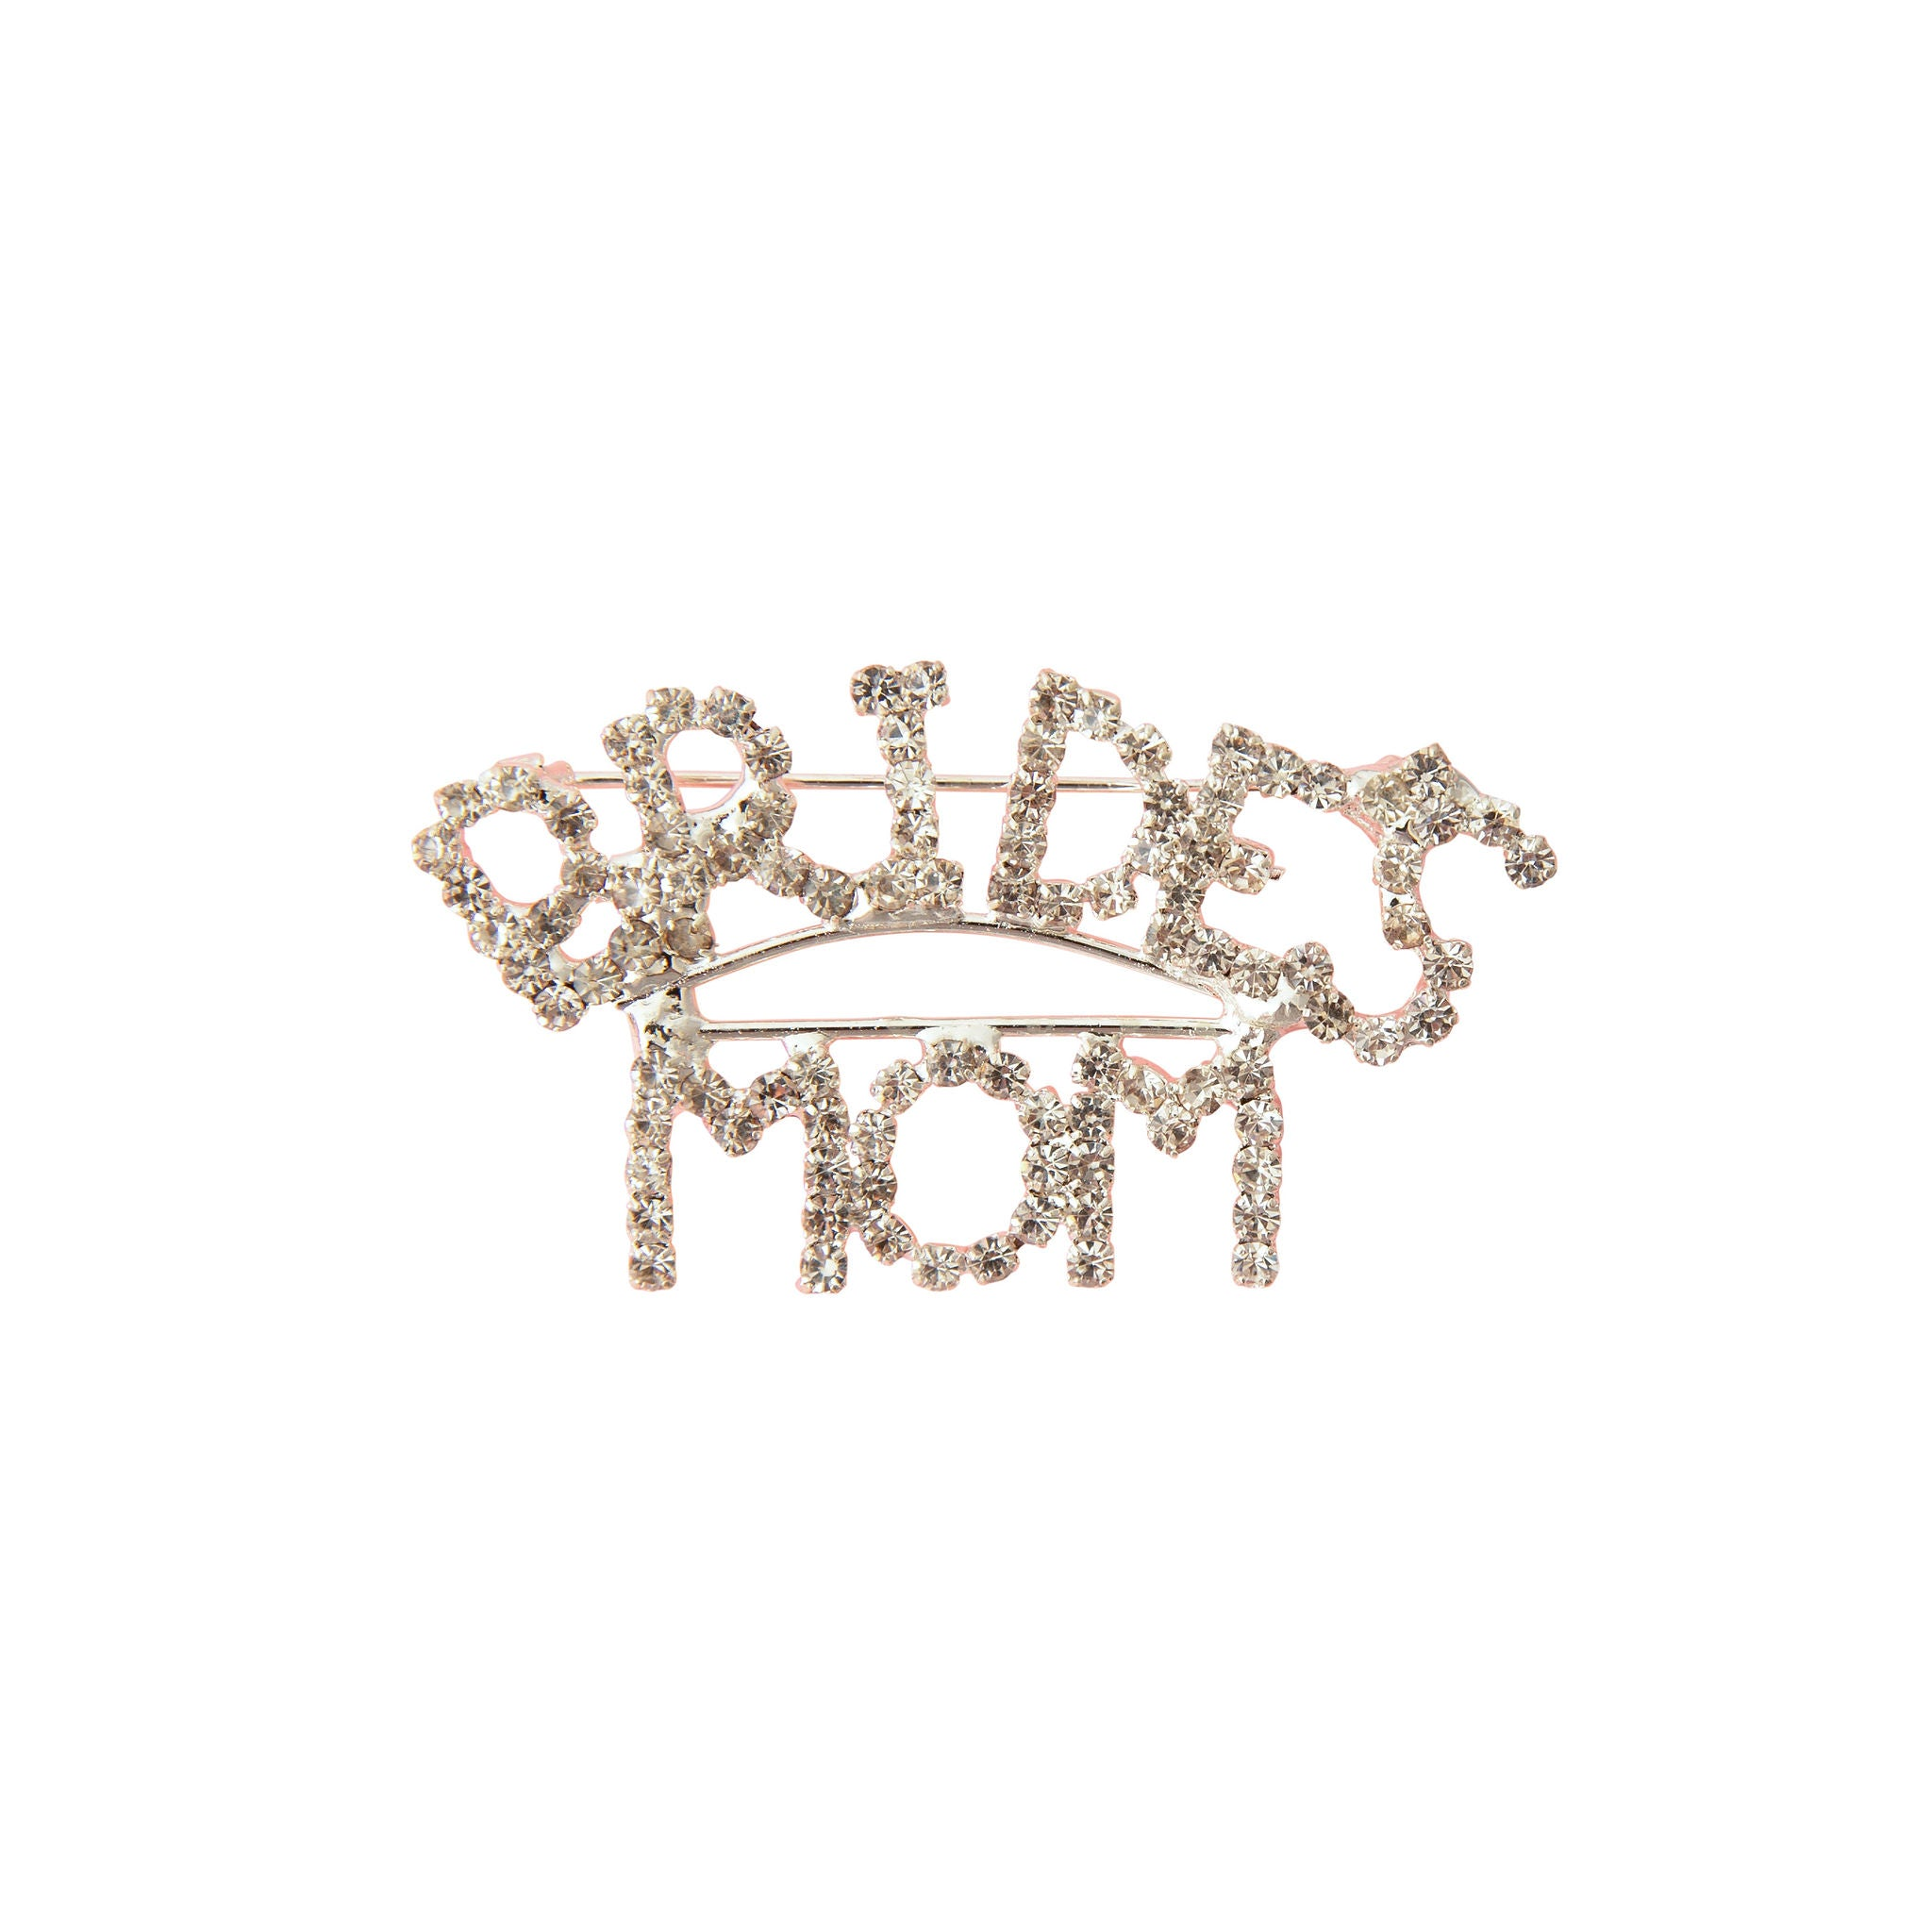 Bride's Mom Rhinestone Brooch